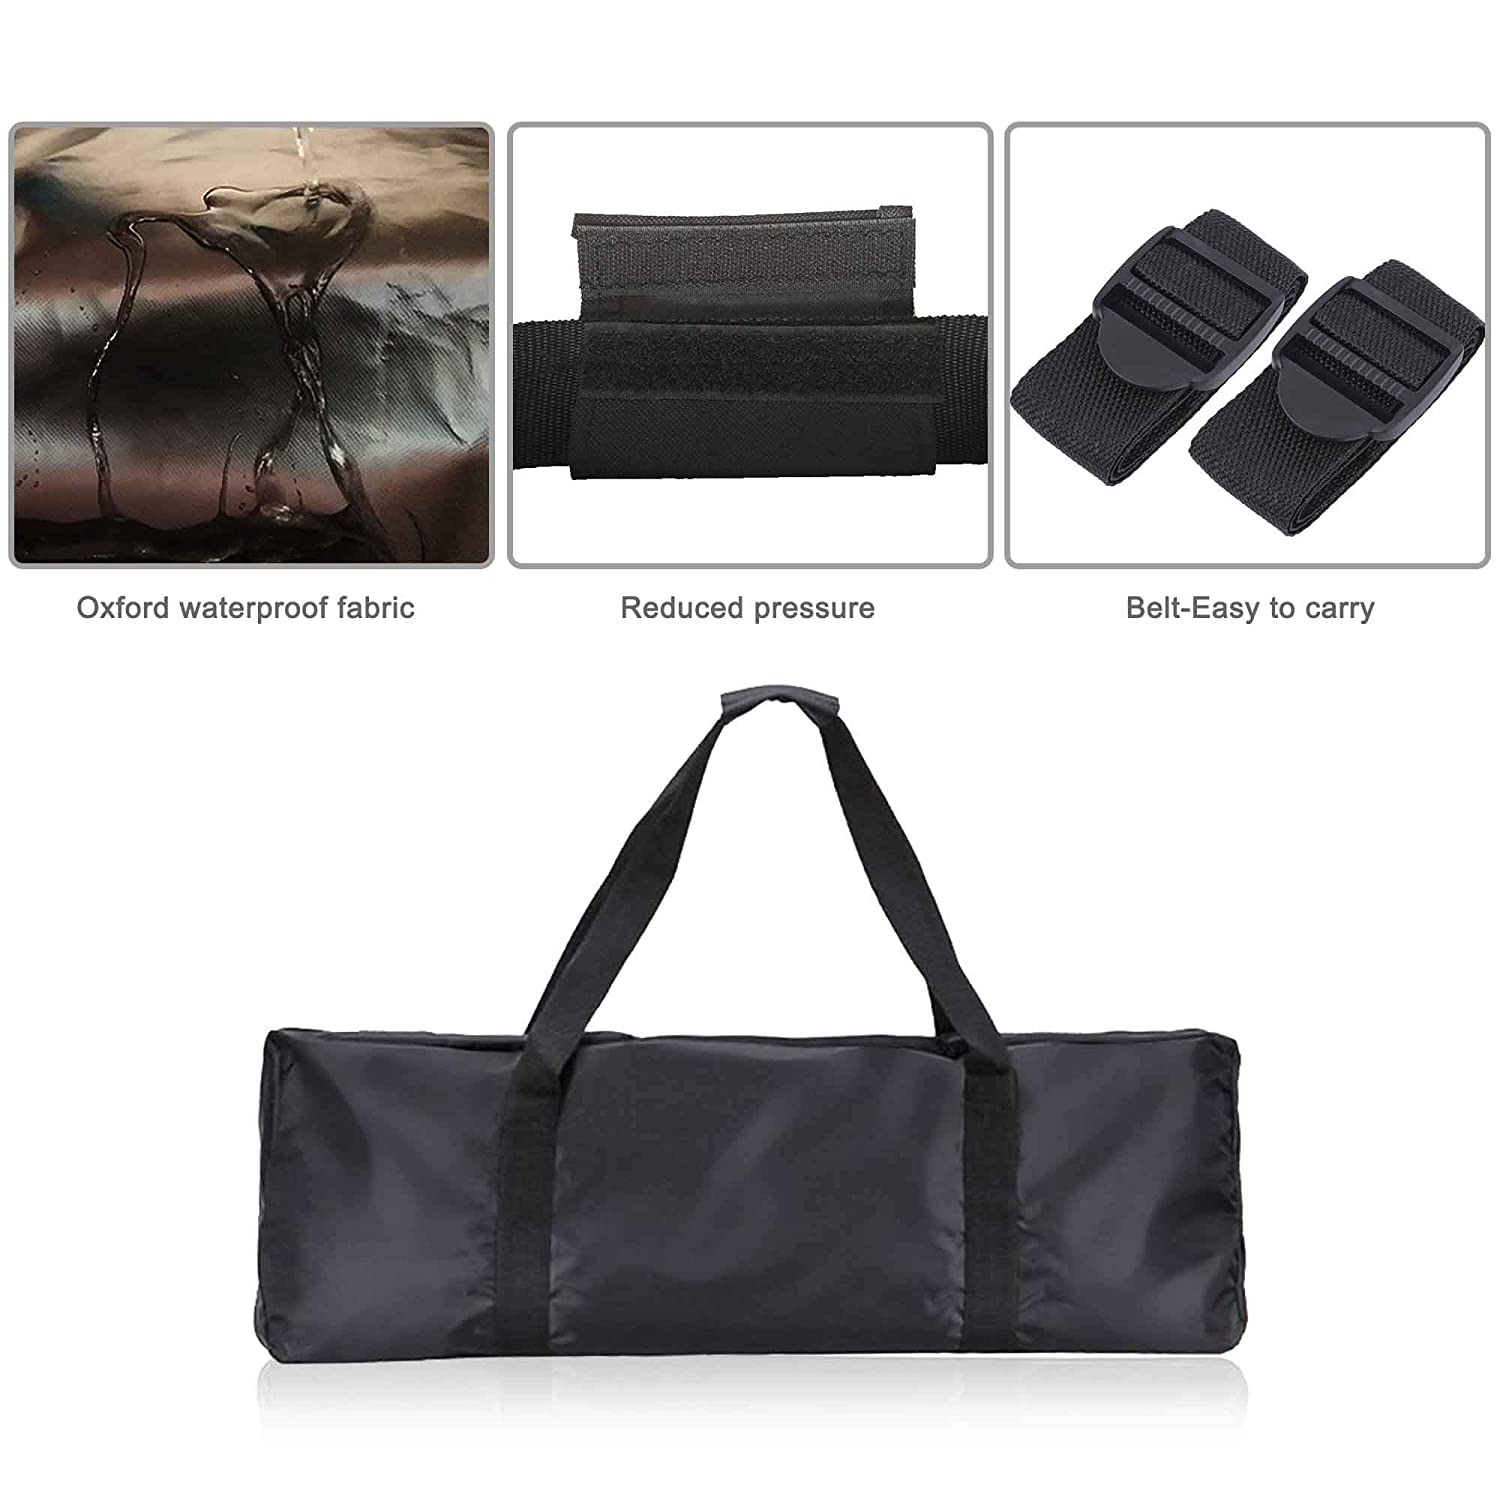 TOMALL Portable Waterproof Handbag Folding Storage Bag Carrying Bag for XIAOMI Mijia M365 Electric Scooter 110 × 45 × 50cm Scooter Carrying Bag ...